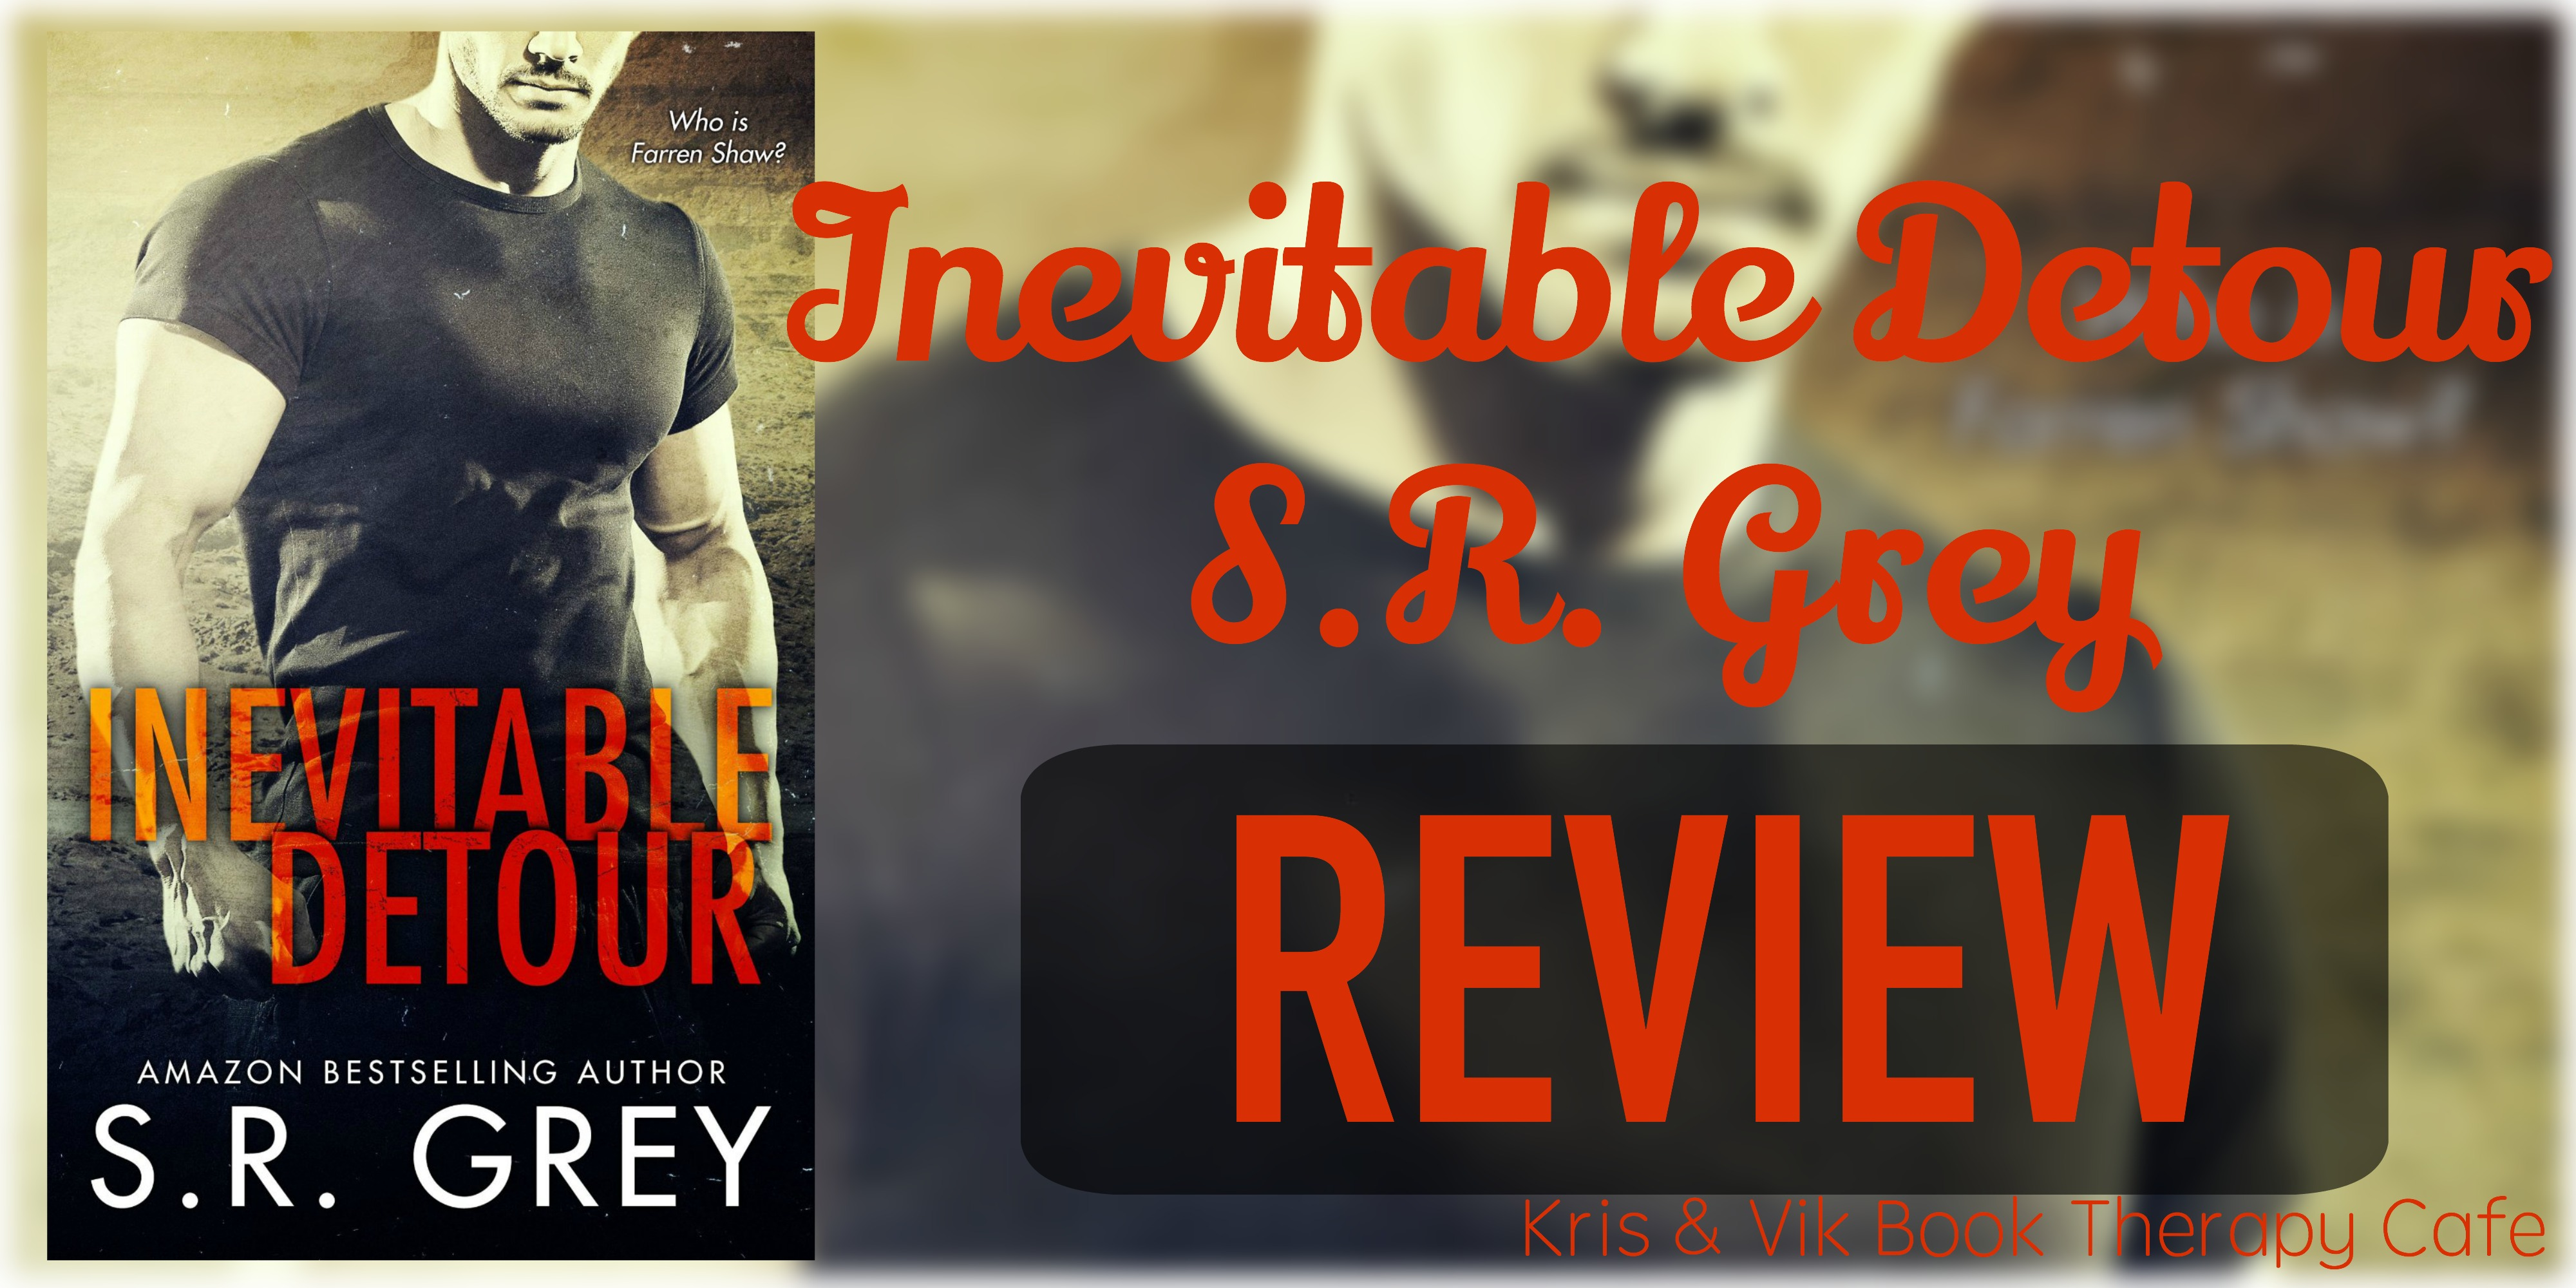 REVIEW: INEVITABLE DETOUR by S.R. Grey